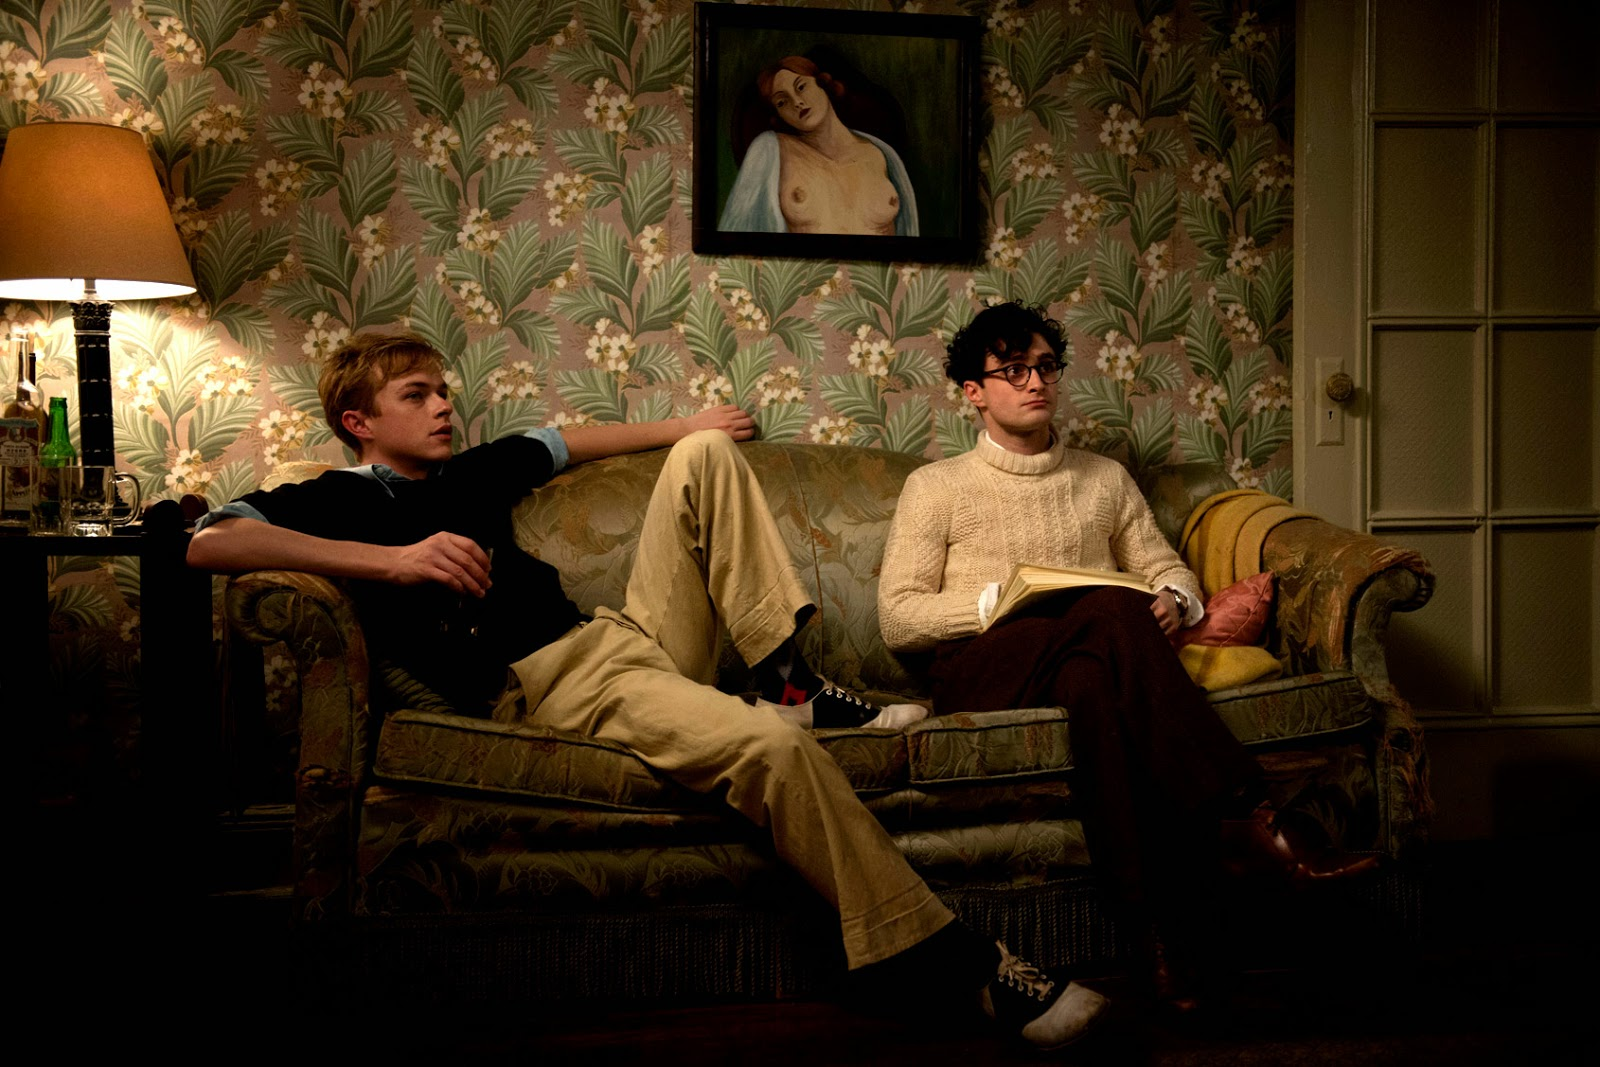 http://athenacinema.com/wp-content/uploads/2013/11/kill-your-darlings-graphic.jpg